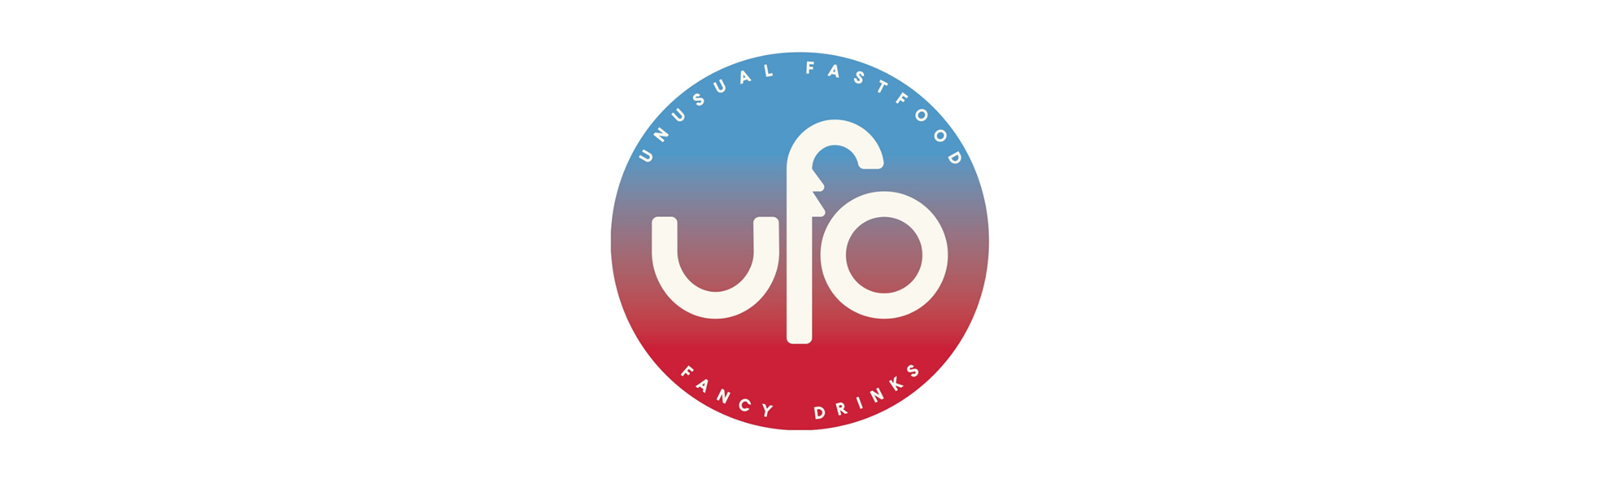 UFO - Unusual Fast Food - Tiare Shopping - Logo